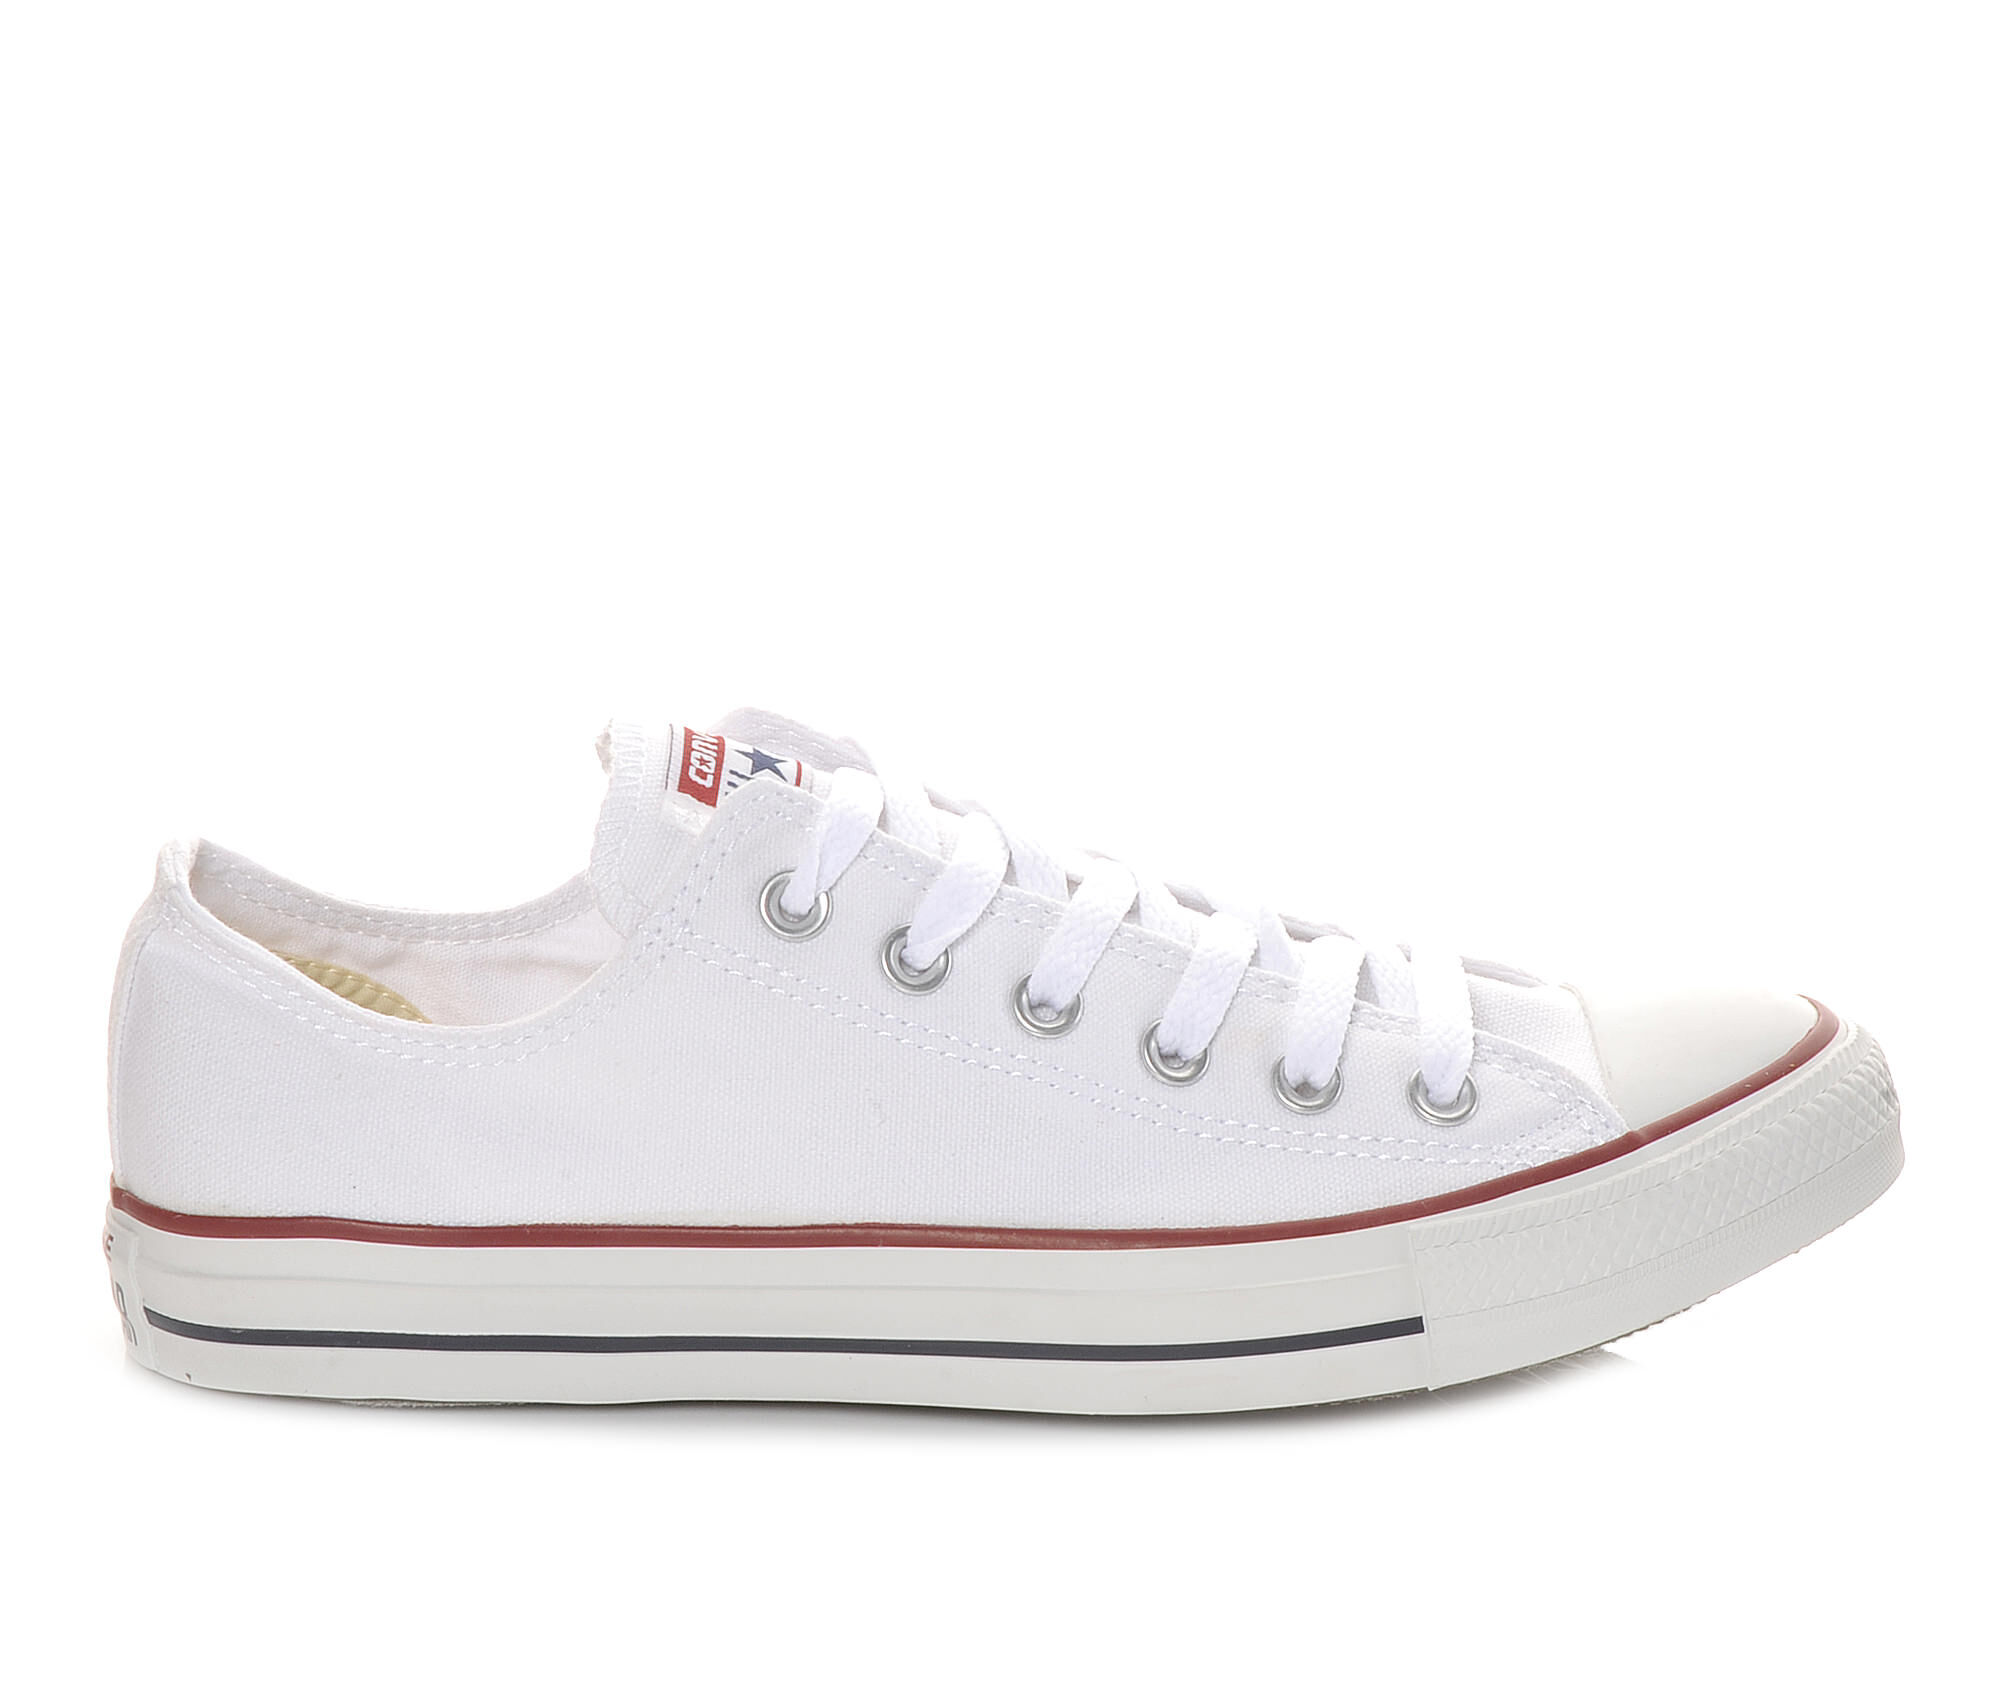 Adults\u0026#39; Converse Chuck Taylor All Star Canvas Ox Core Sneakers